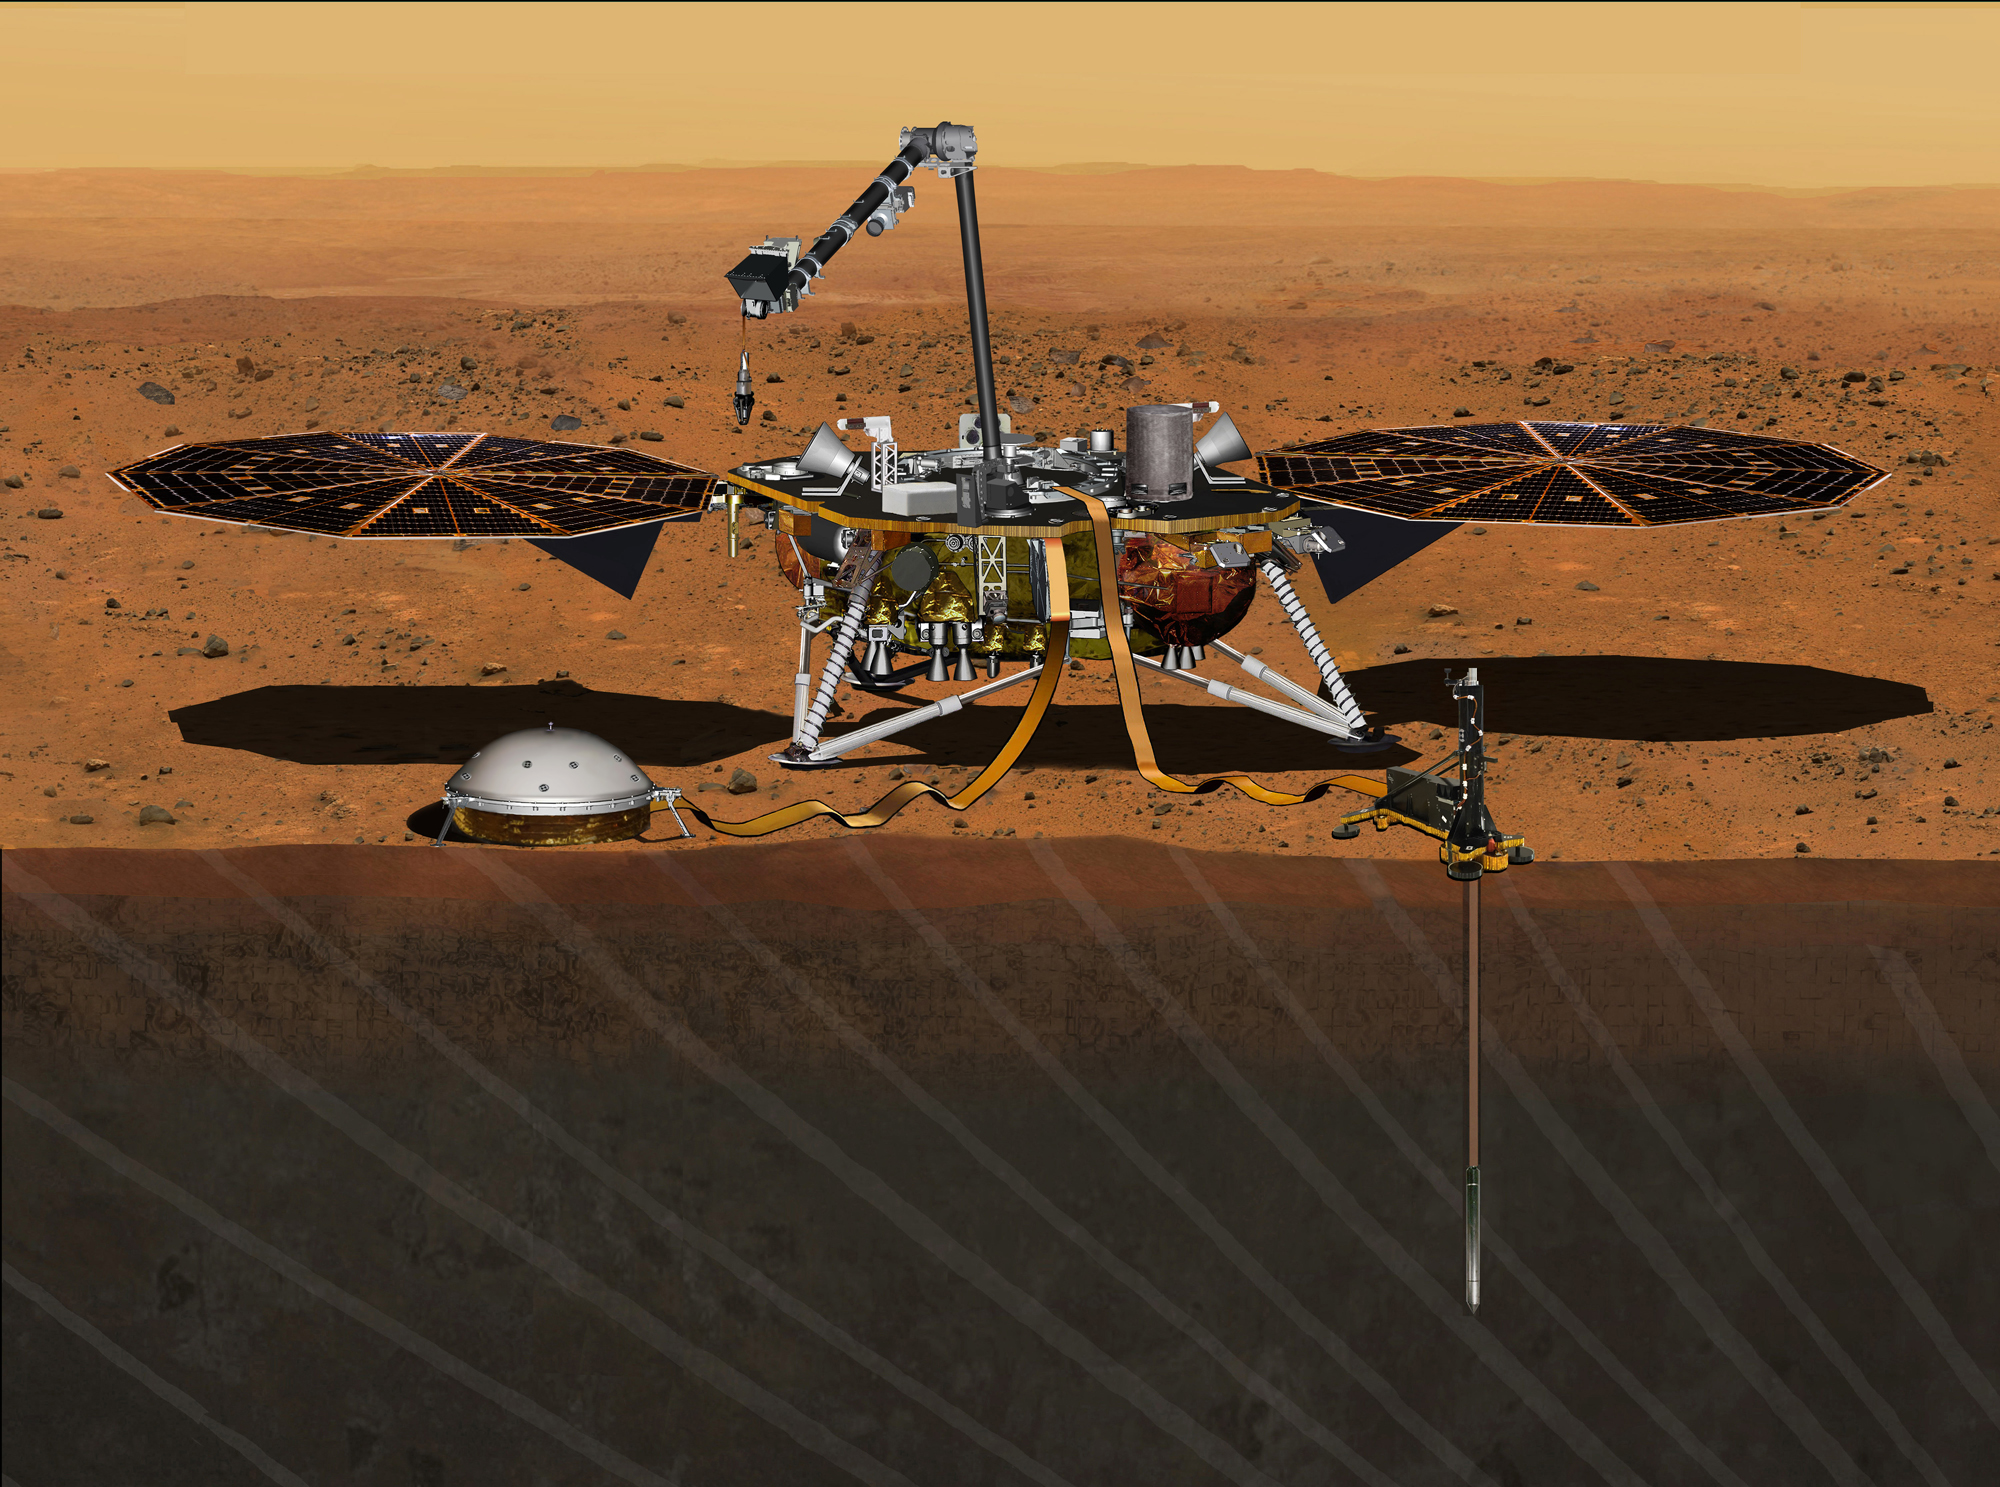 Radzanowski On Mars InSight Lander: NASA To Determine Soon If It Will Aim For A 2018 Launch Or Scrap The Mission (space.com)